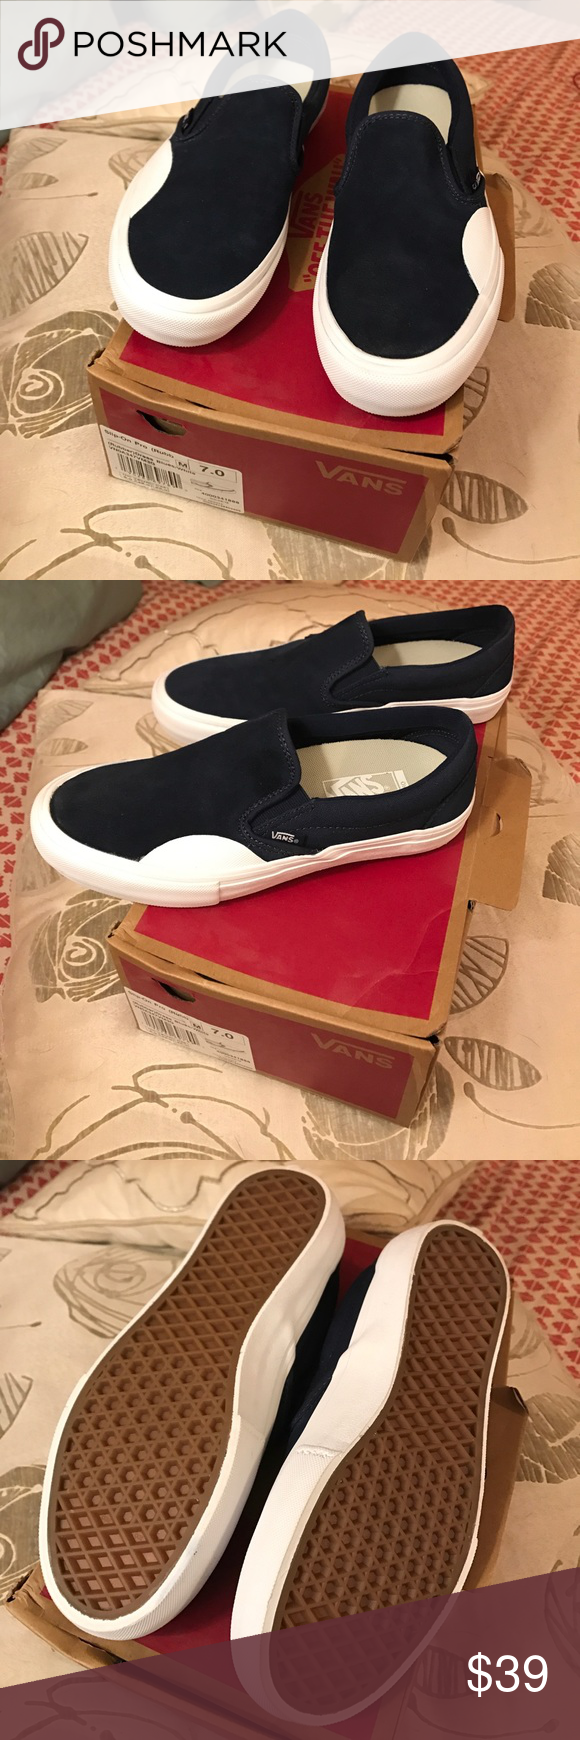 a1ff3f7634a178 Vans Slip-on Pro in (Rubber) Dress Blues White Brand new - never worn - pro  style vans meaning it includes the ultracush lining versus the regular.